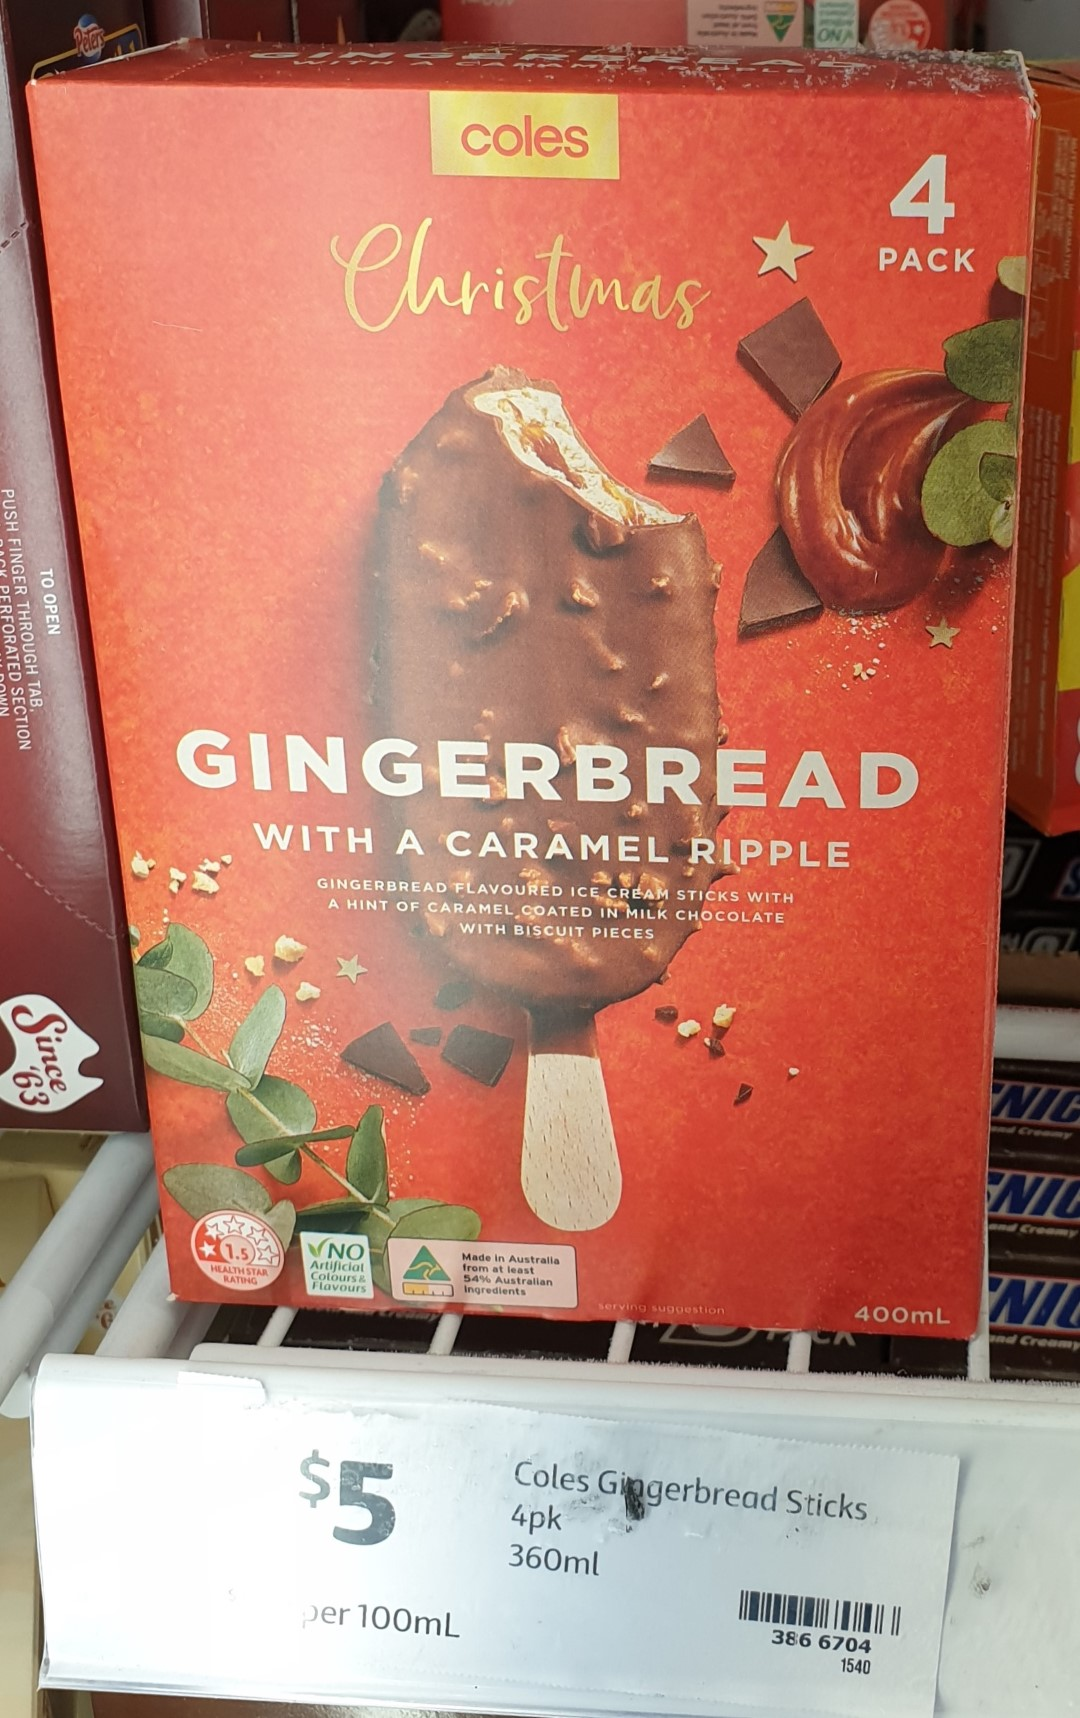 Coles 400mL Christmas Ice Cream Gingerbread With A Caramel Ripple